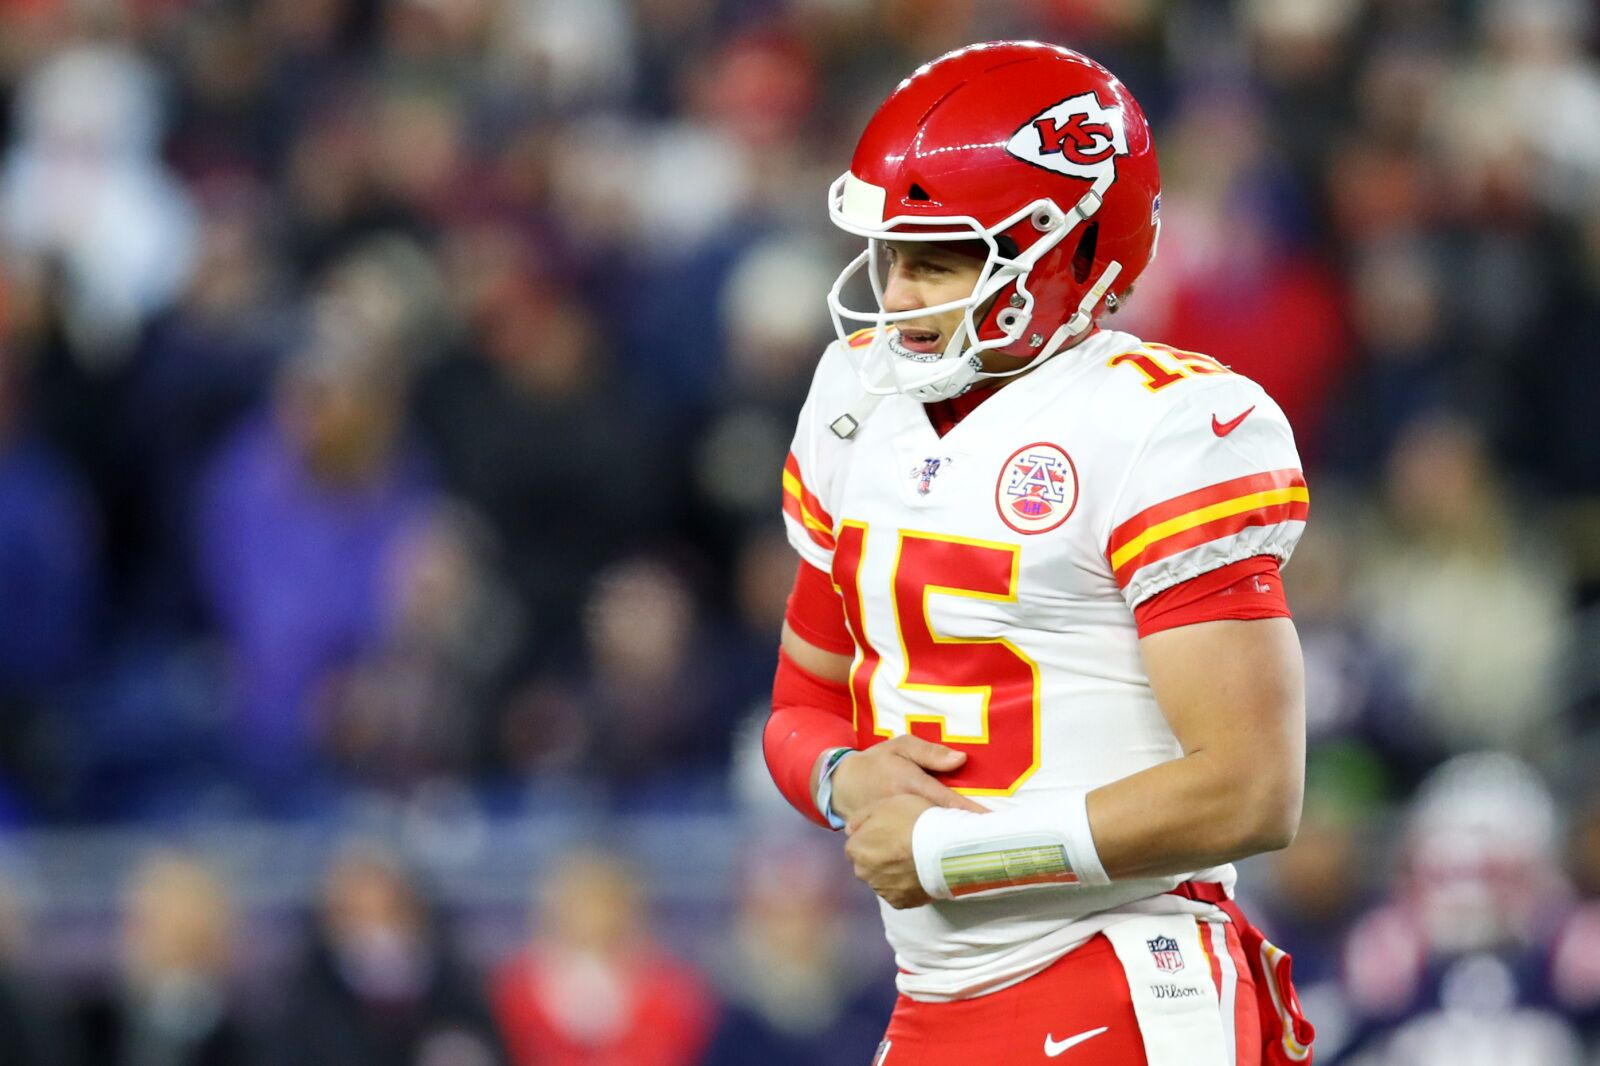 Patrick Mahomes will test hand injury in Chiefs practice